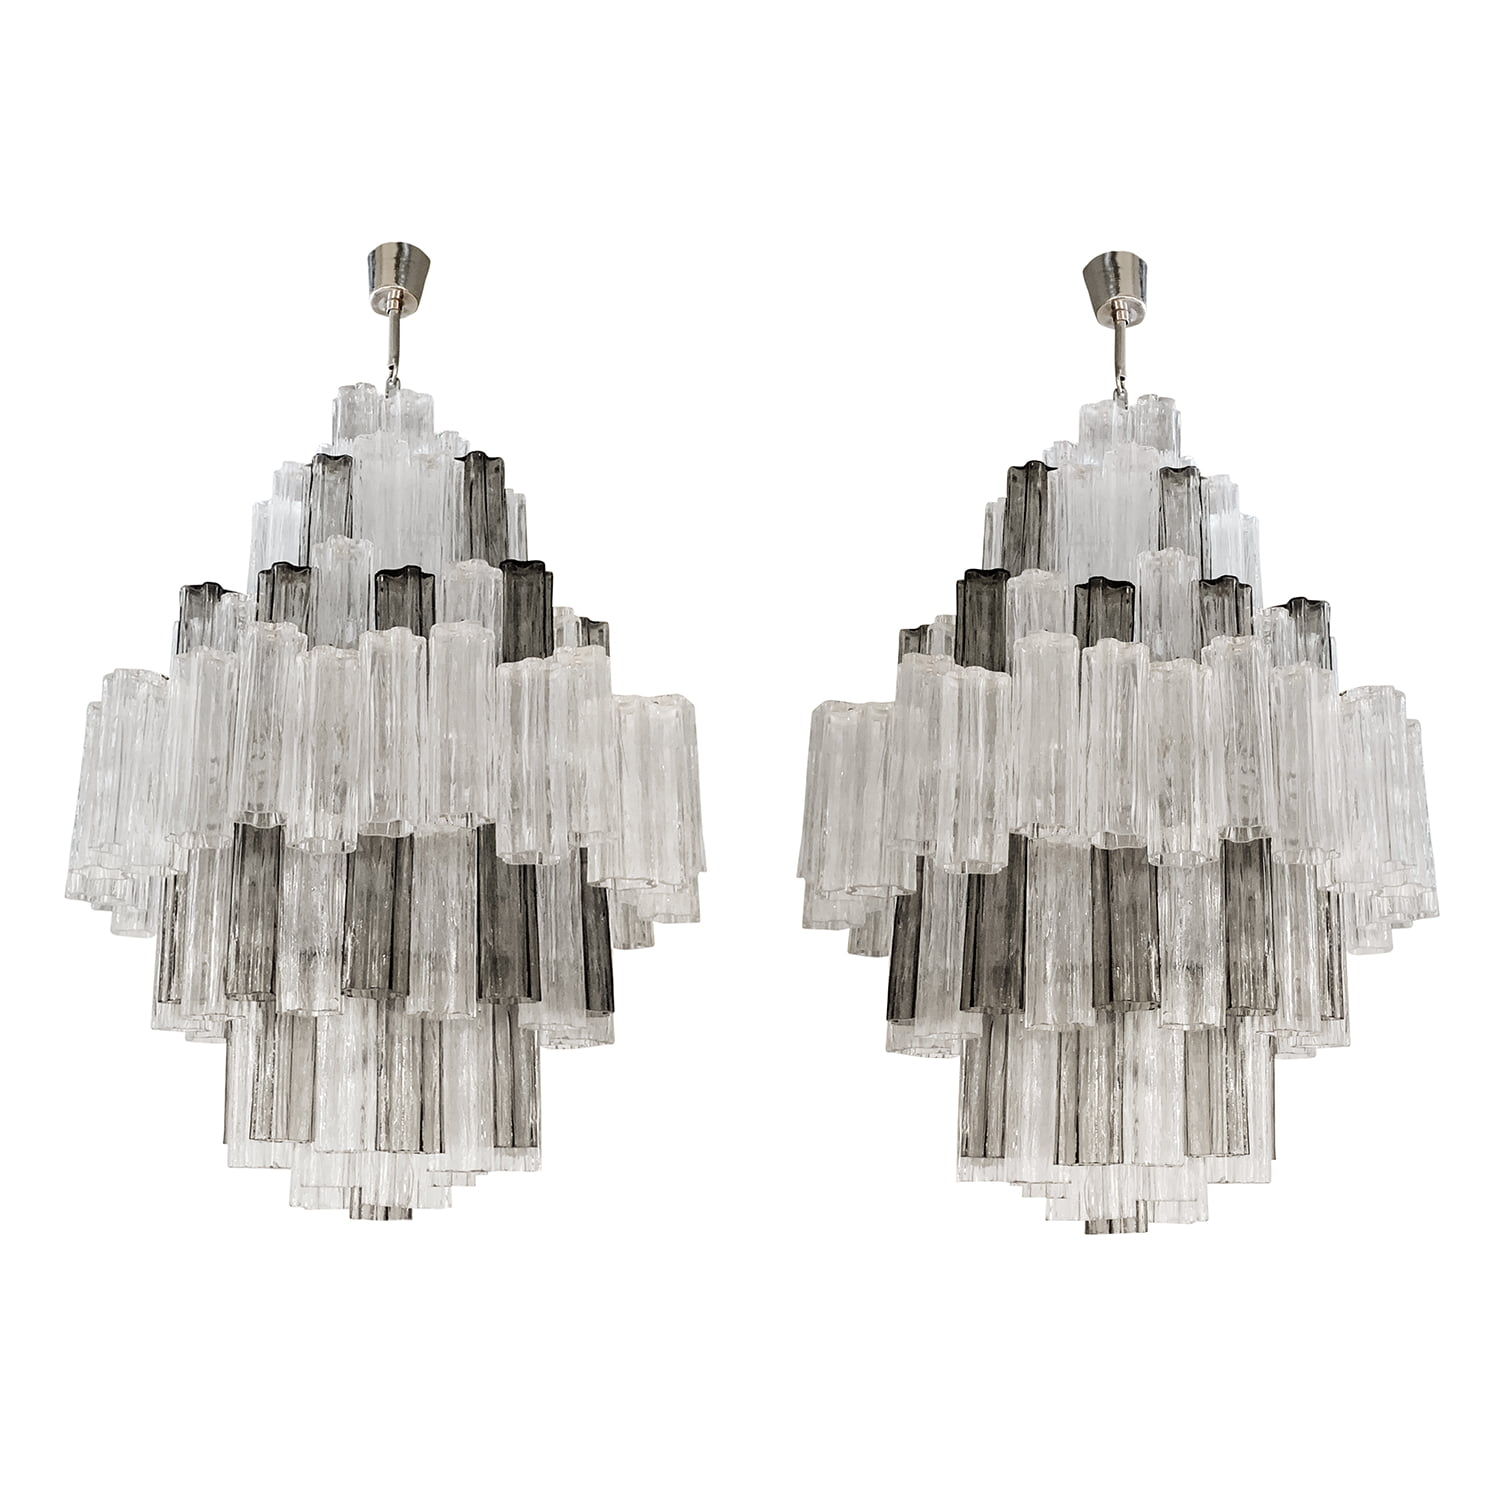 20th Century Italian Pair of Eight Tiered Murano Glass Chandeliers by Paolo Venini & Toni Zucceri